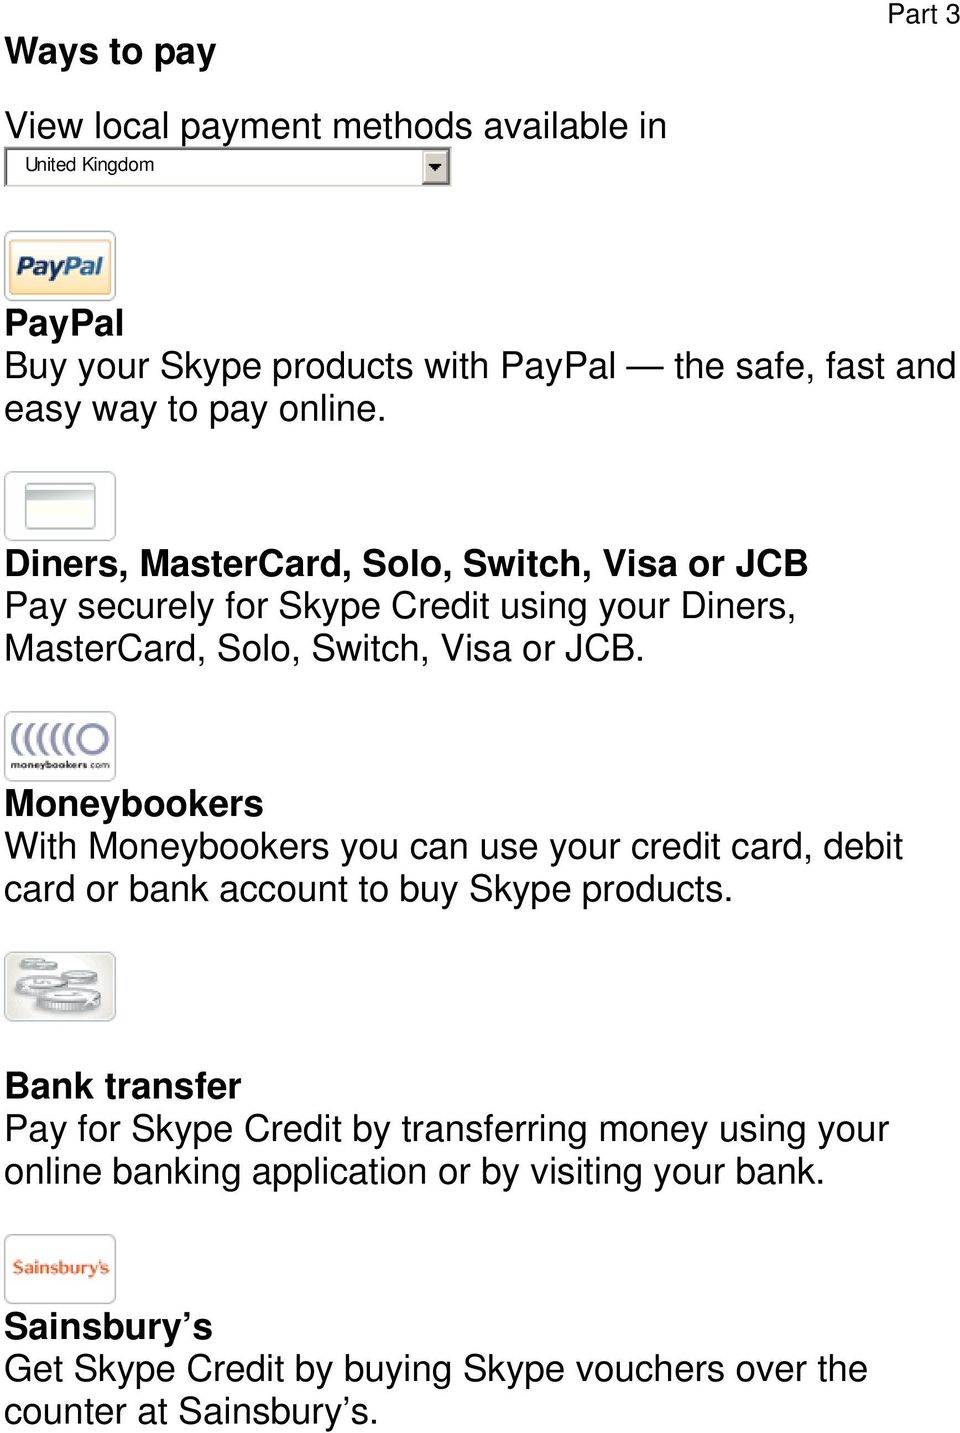 Moneybookers With Moneybookers you can use your credit card, debit card or bank account to buy Skype products.